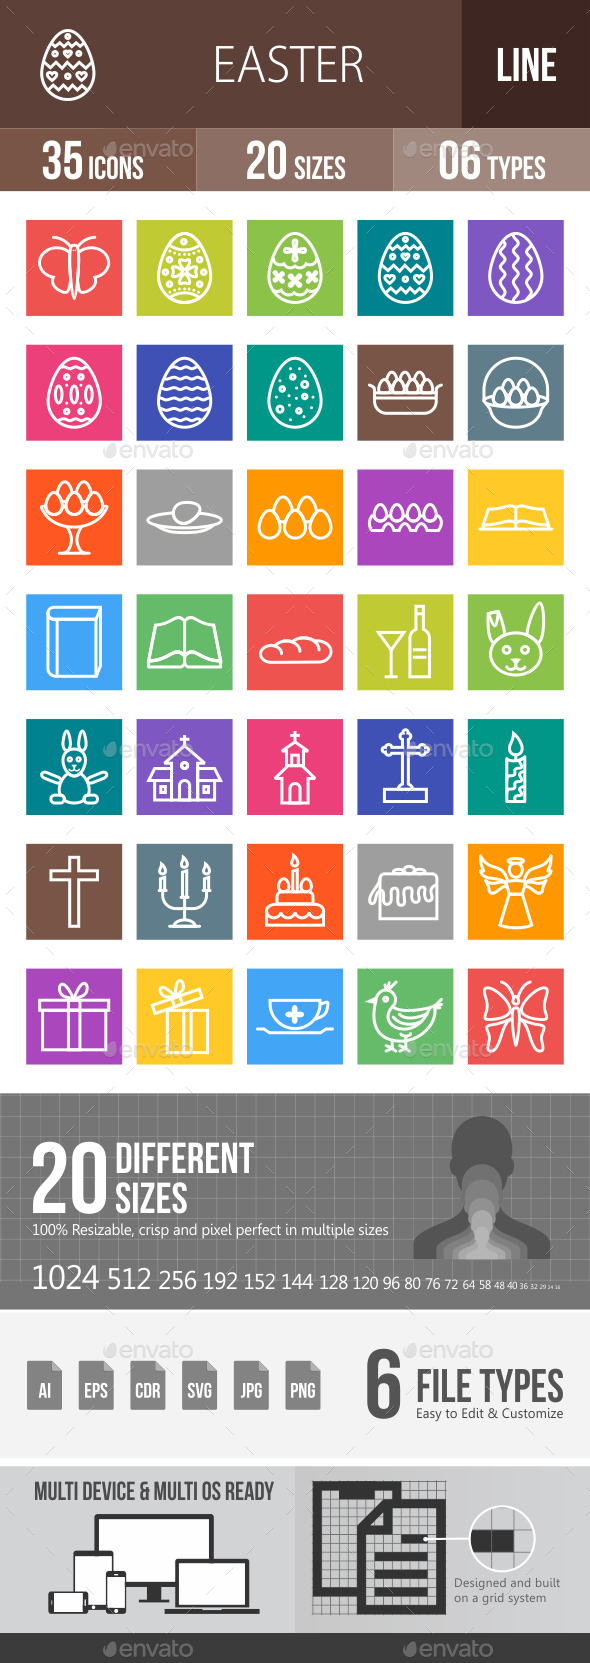 35 Easter Line Multicolor B/G Icons - Icons